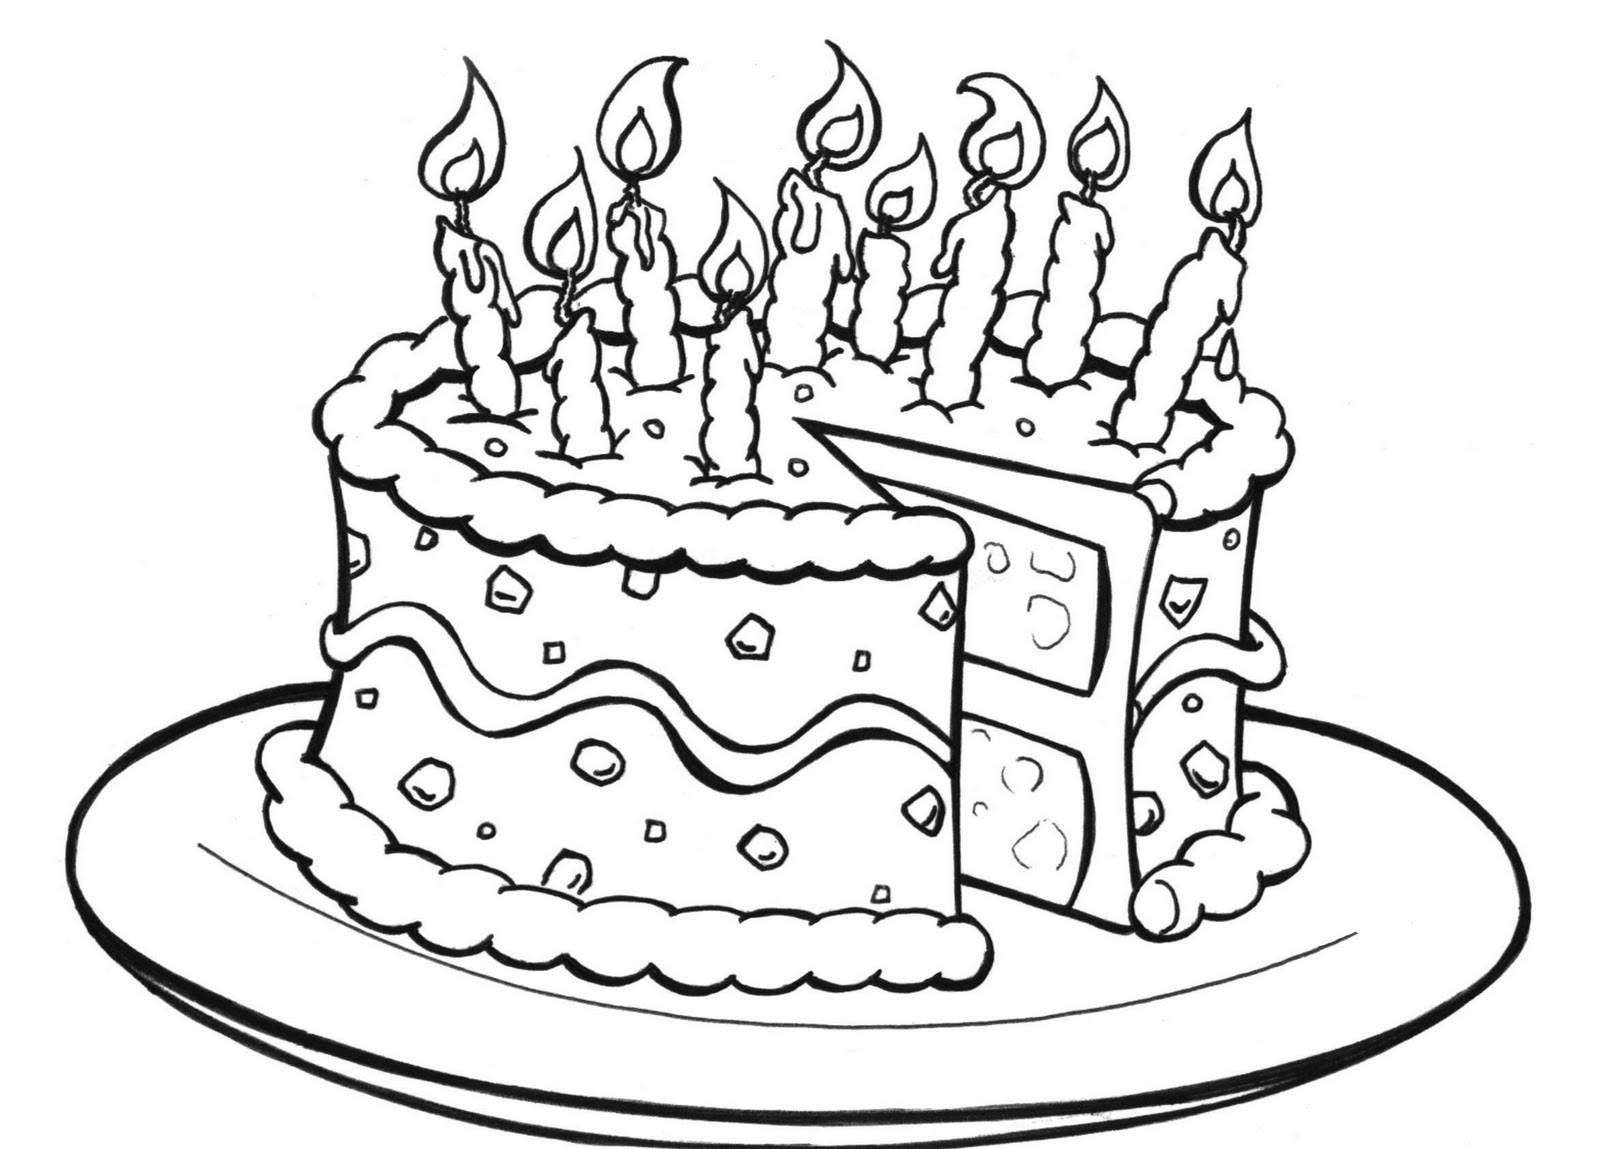 free printable birthday coloring pages ; free-birthday-coloring-pages-free-birthday-coloring-pages-free-printable-birthday-cake-coloring-pages-for-kids